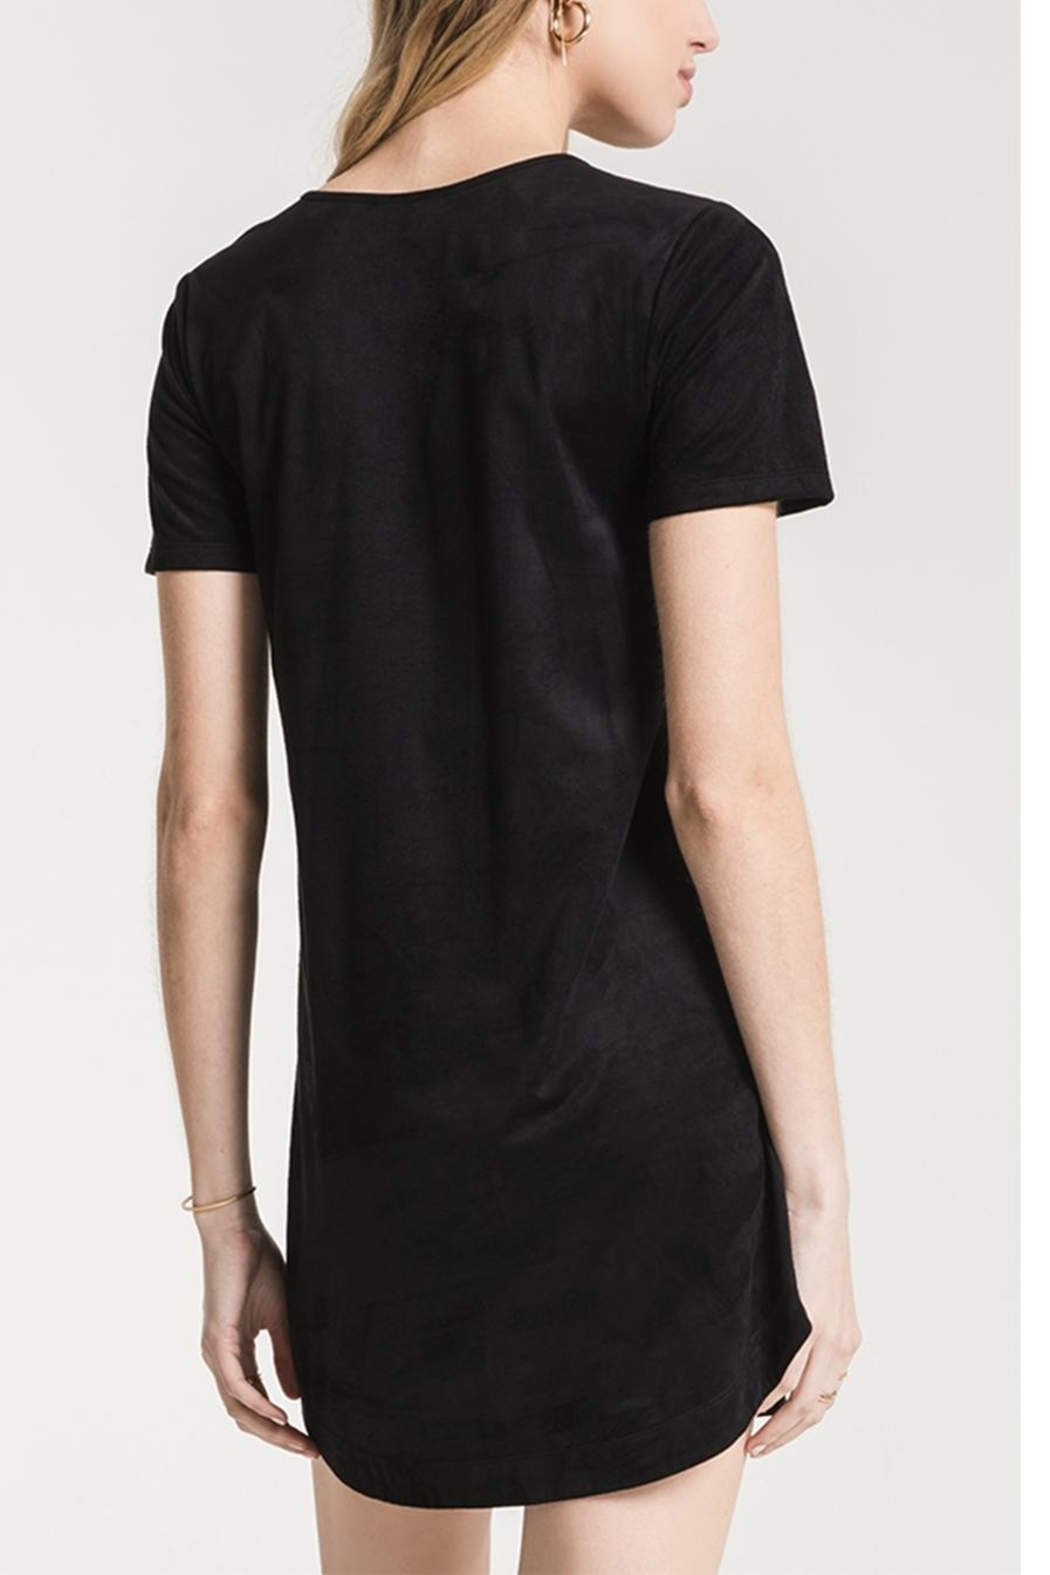 z supply Suede Cut-Out Dress - Side Cropped Image